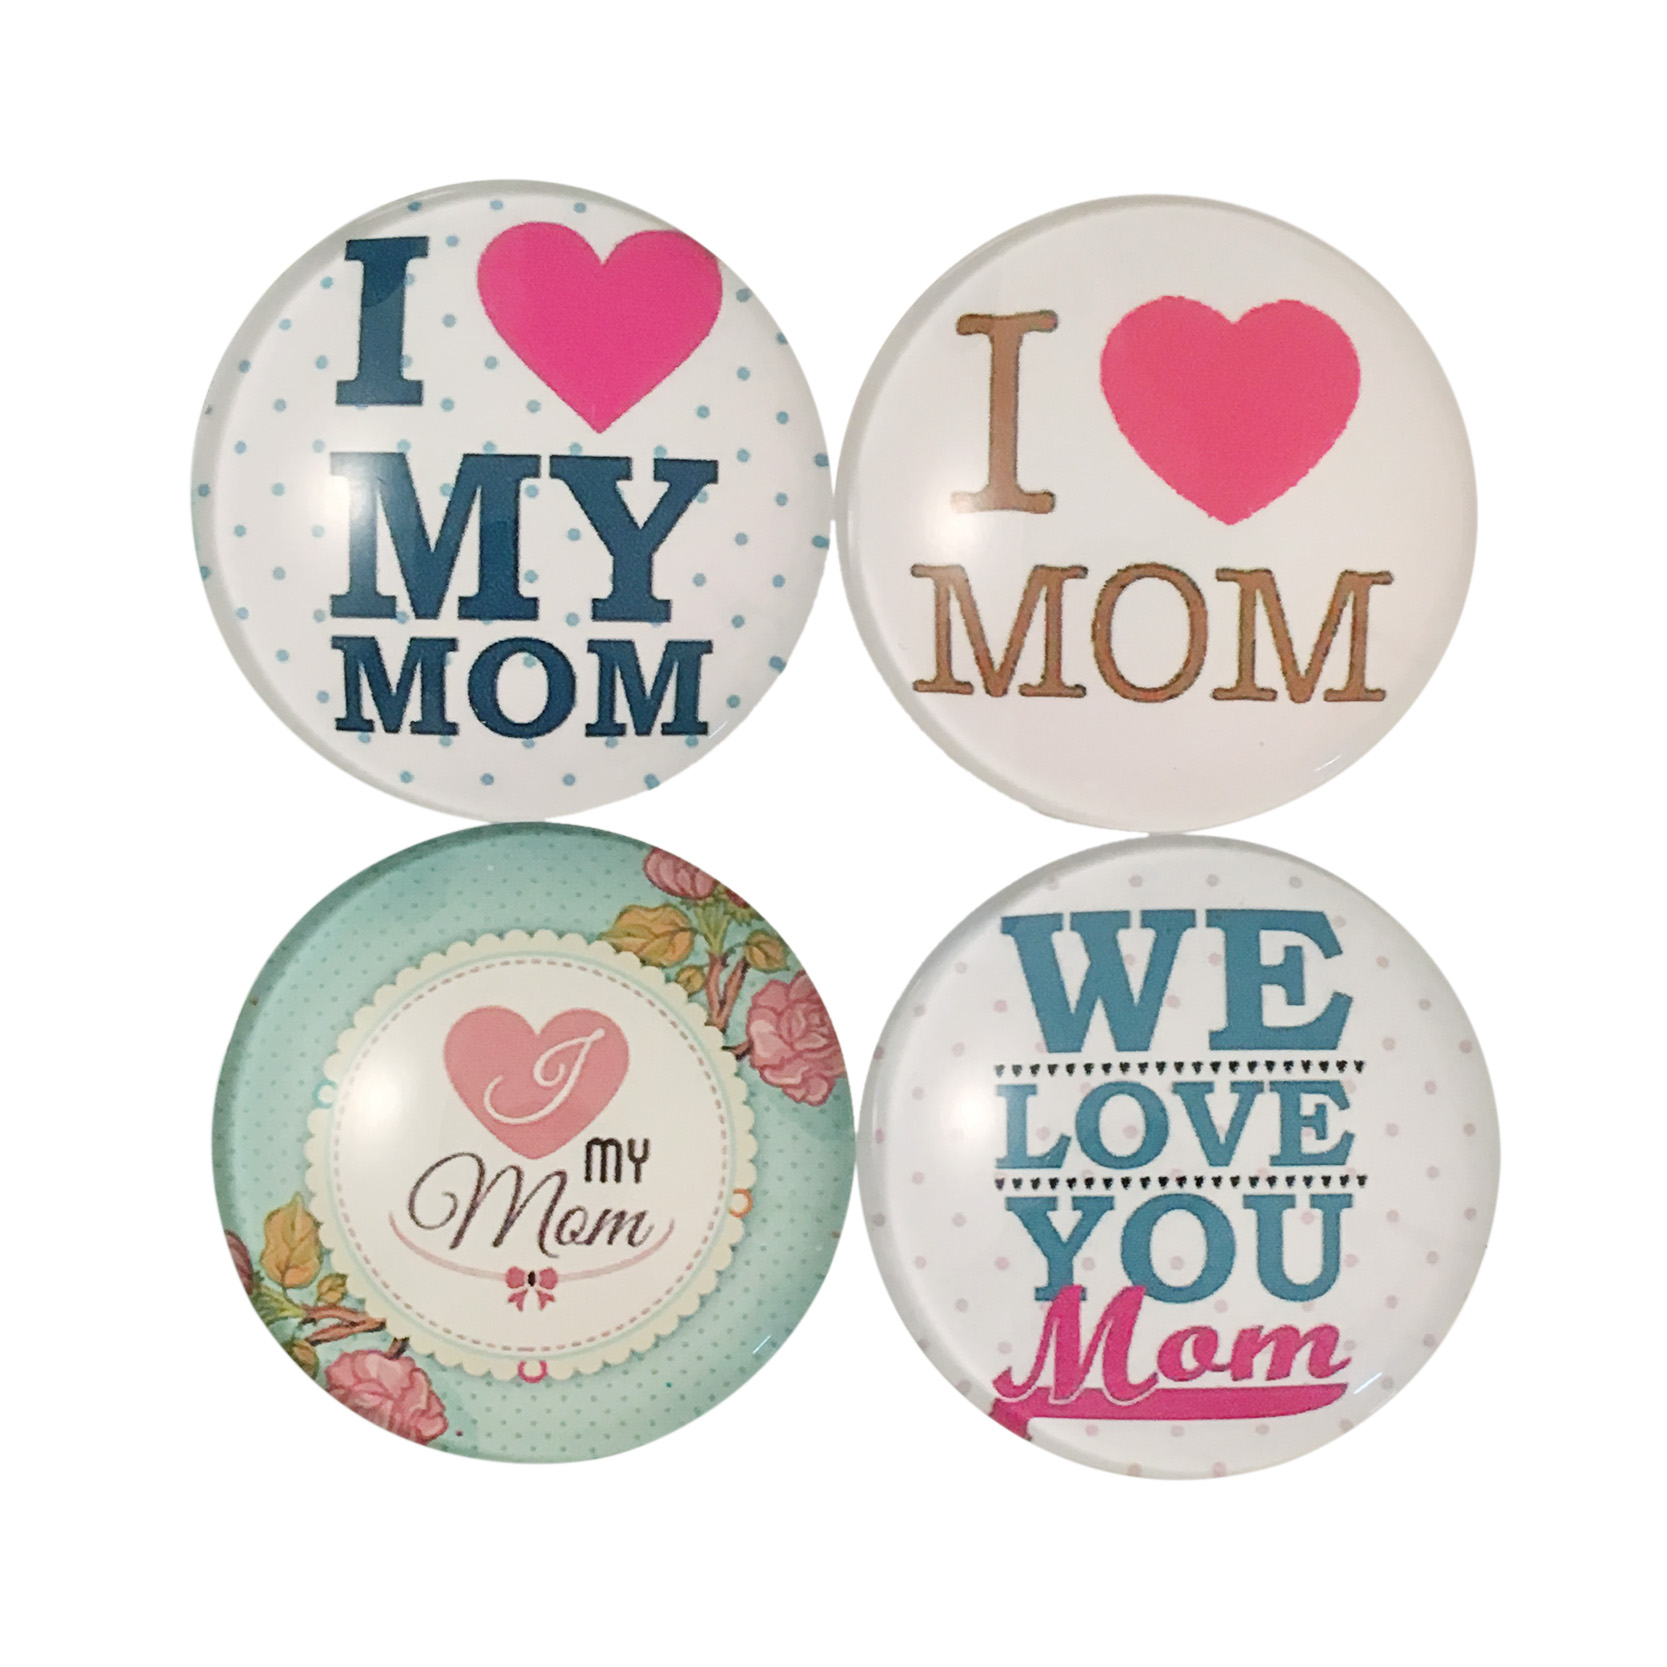 Love Mom Quote Fridge Magnet Round Glass Refrigerator Sticker Christmas Home Decoration Message Holder Wholesale Gift For Mom